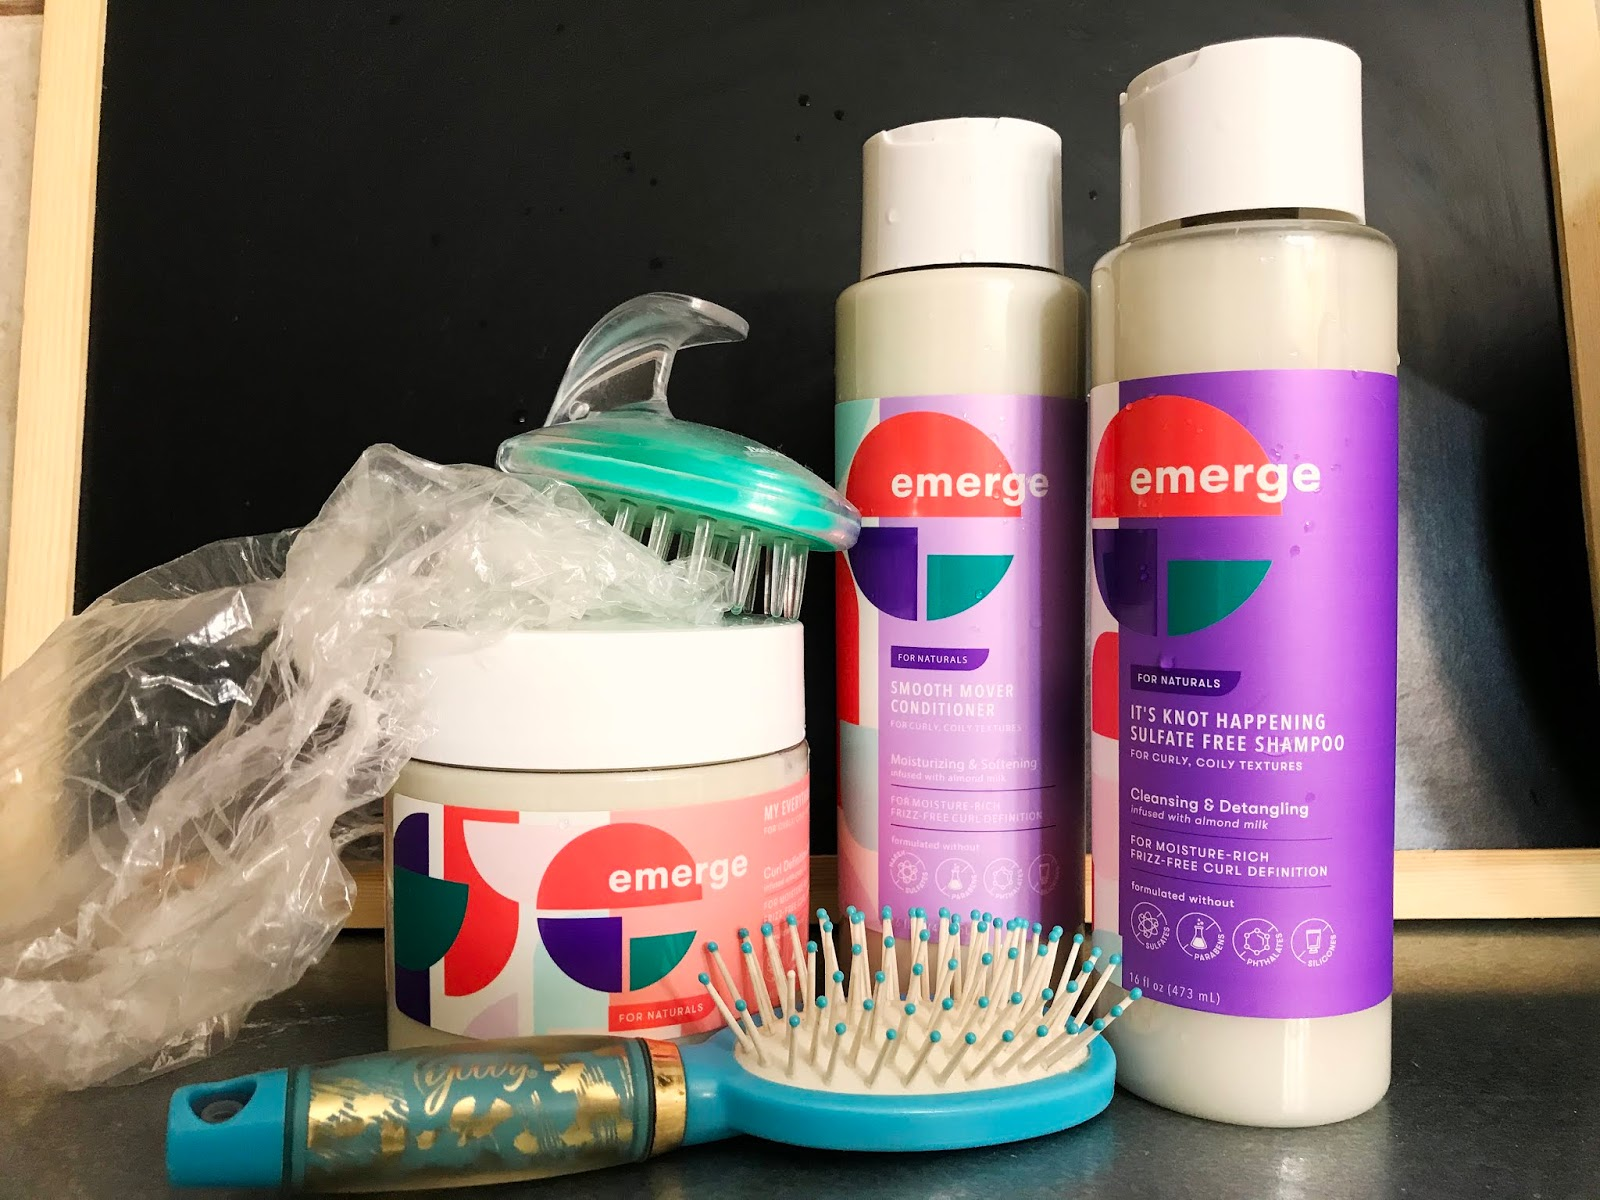 How to Emerge Hair Care Like the Pros